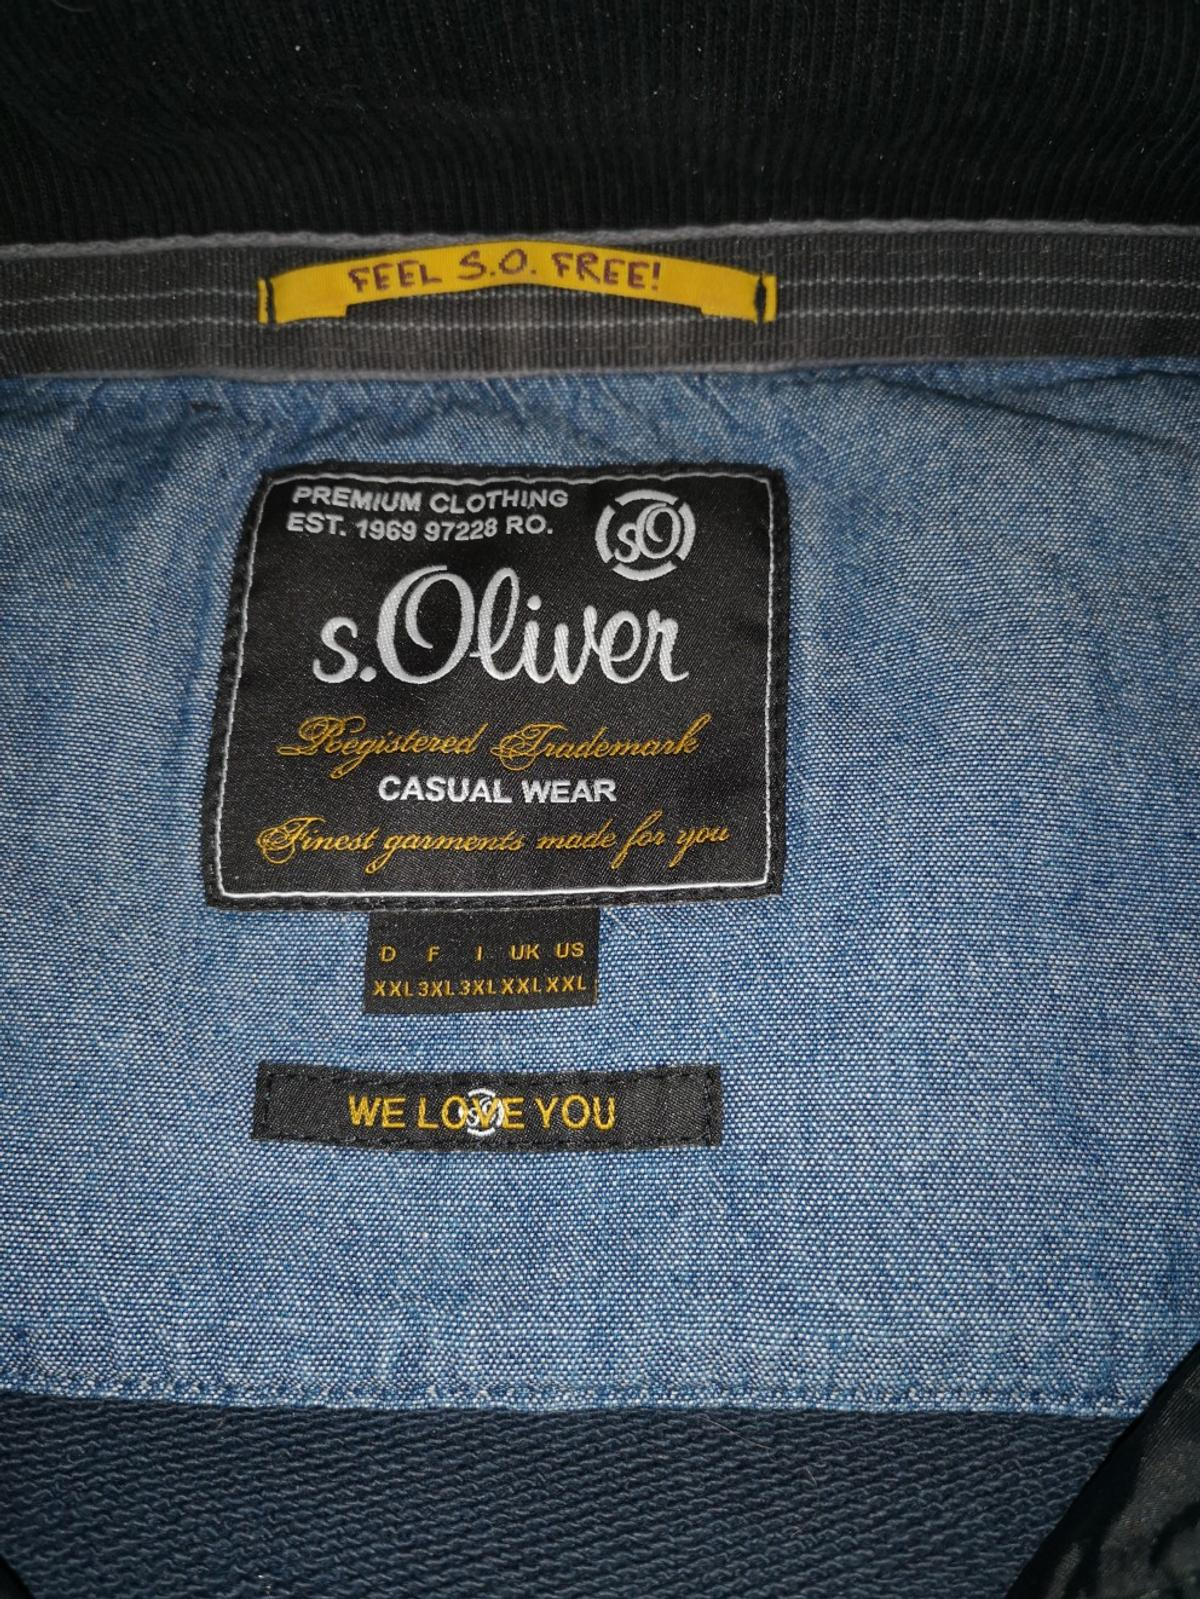 outlet on sale official supplier biggest discount S. Oliver Sweatshirt xxl